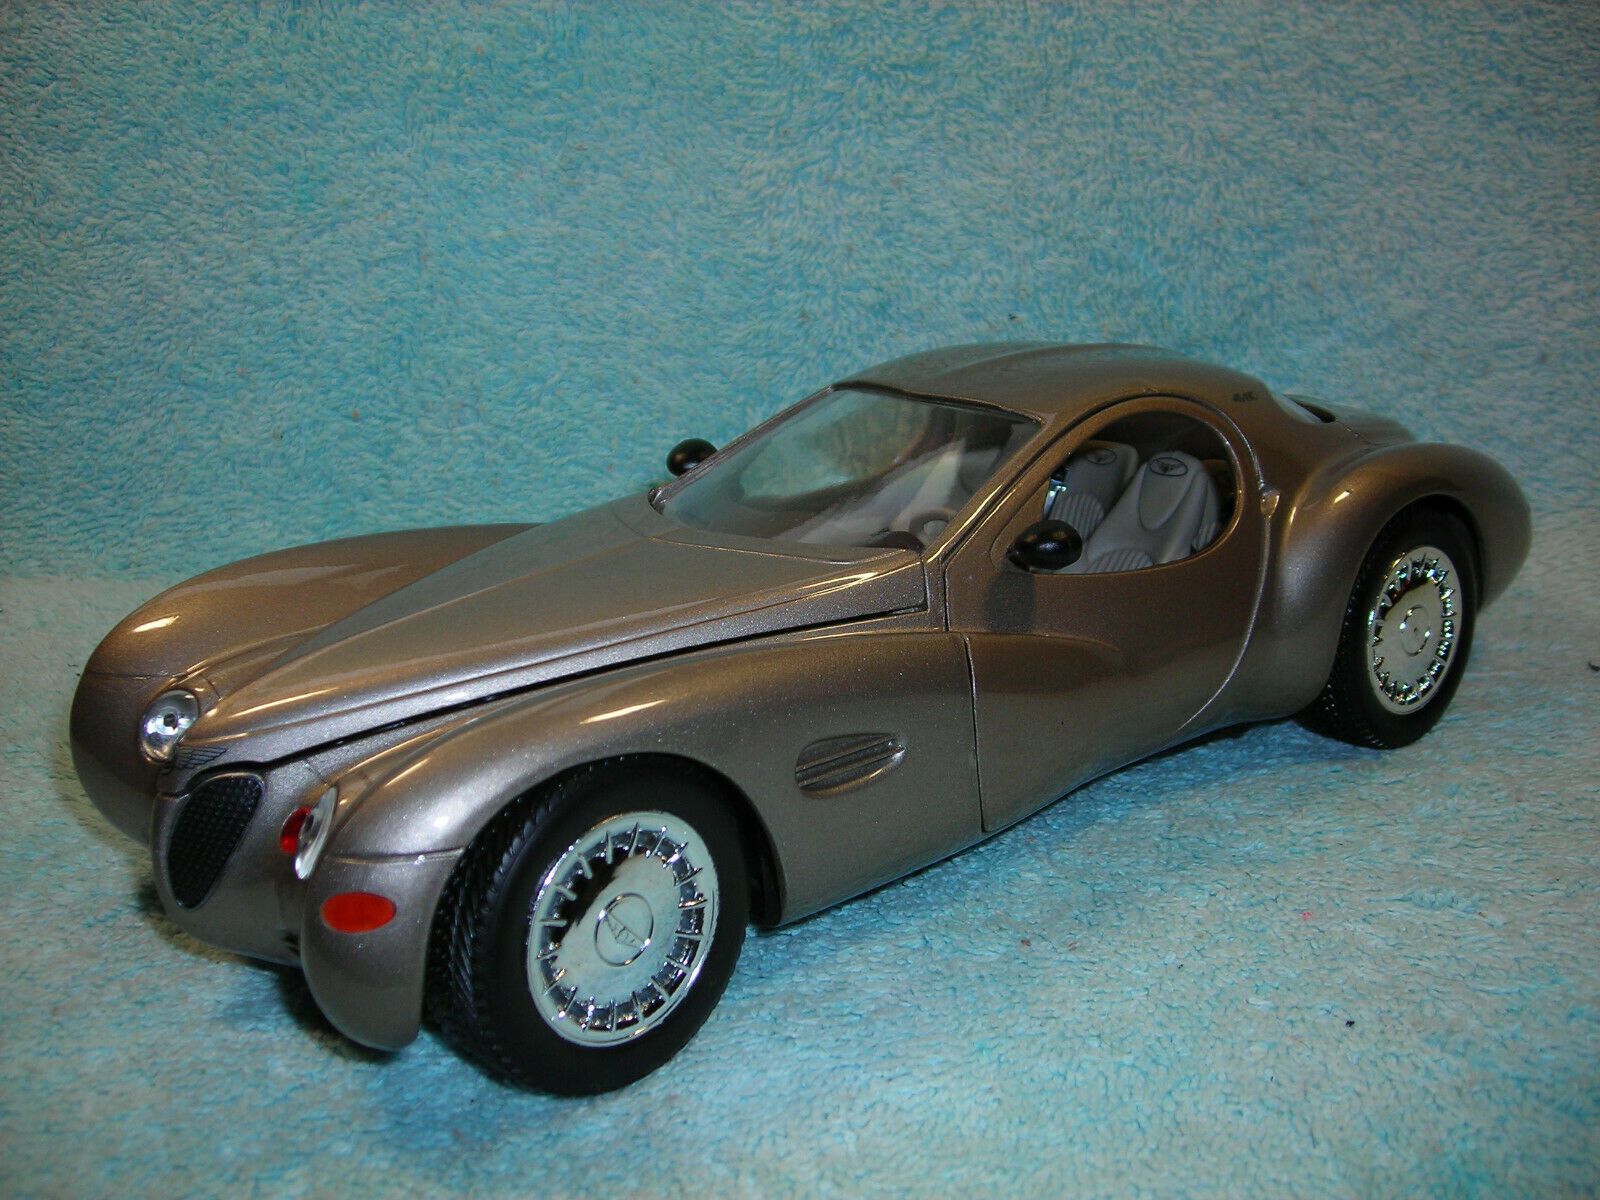 1 18 SCALE 1995 CHRYSLER ATLANTIC CONCEPT IN CHAMPAGNE METALLIC BY GUILOY NO BOX